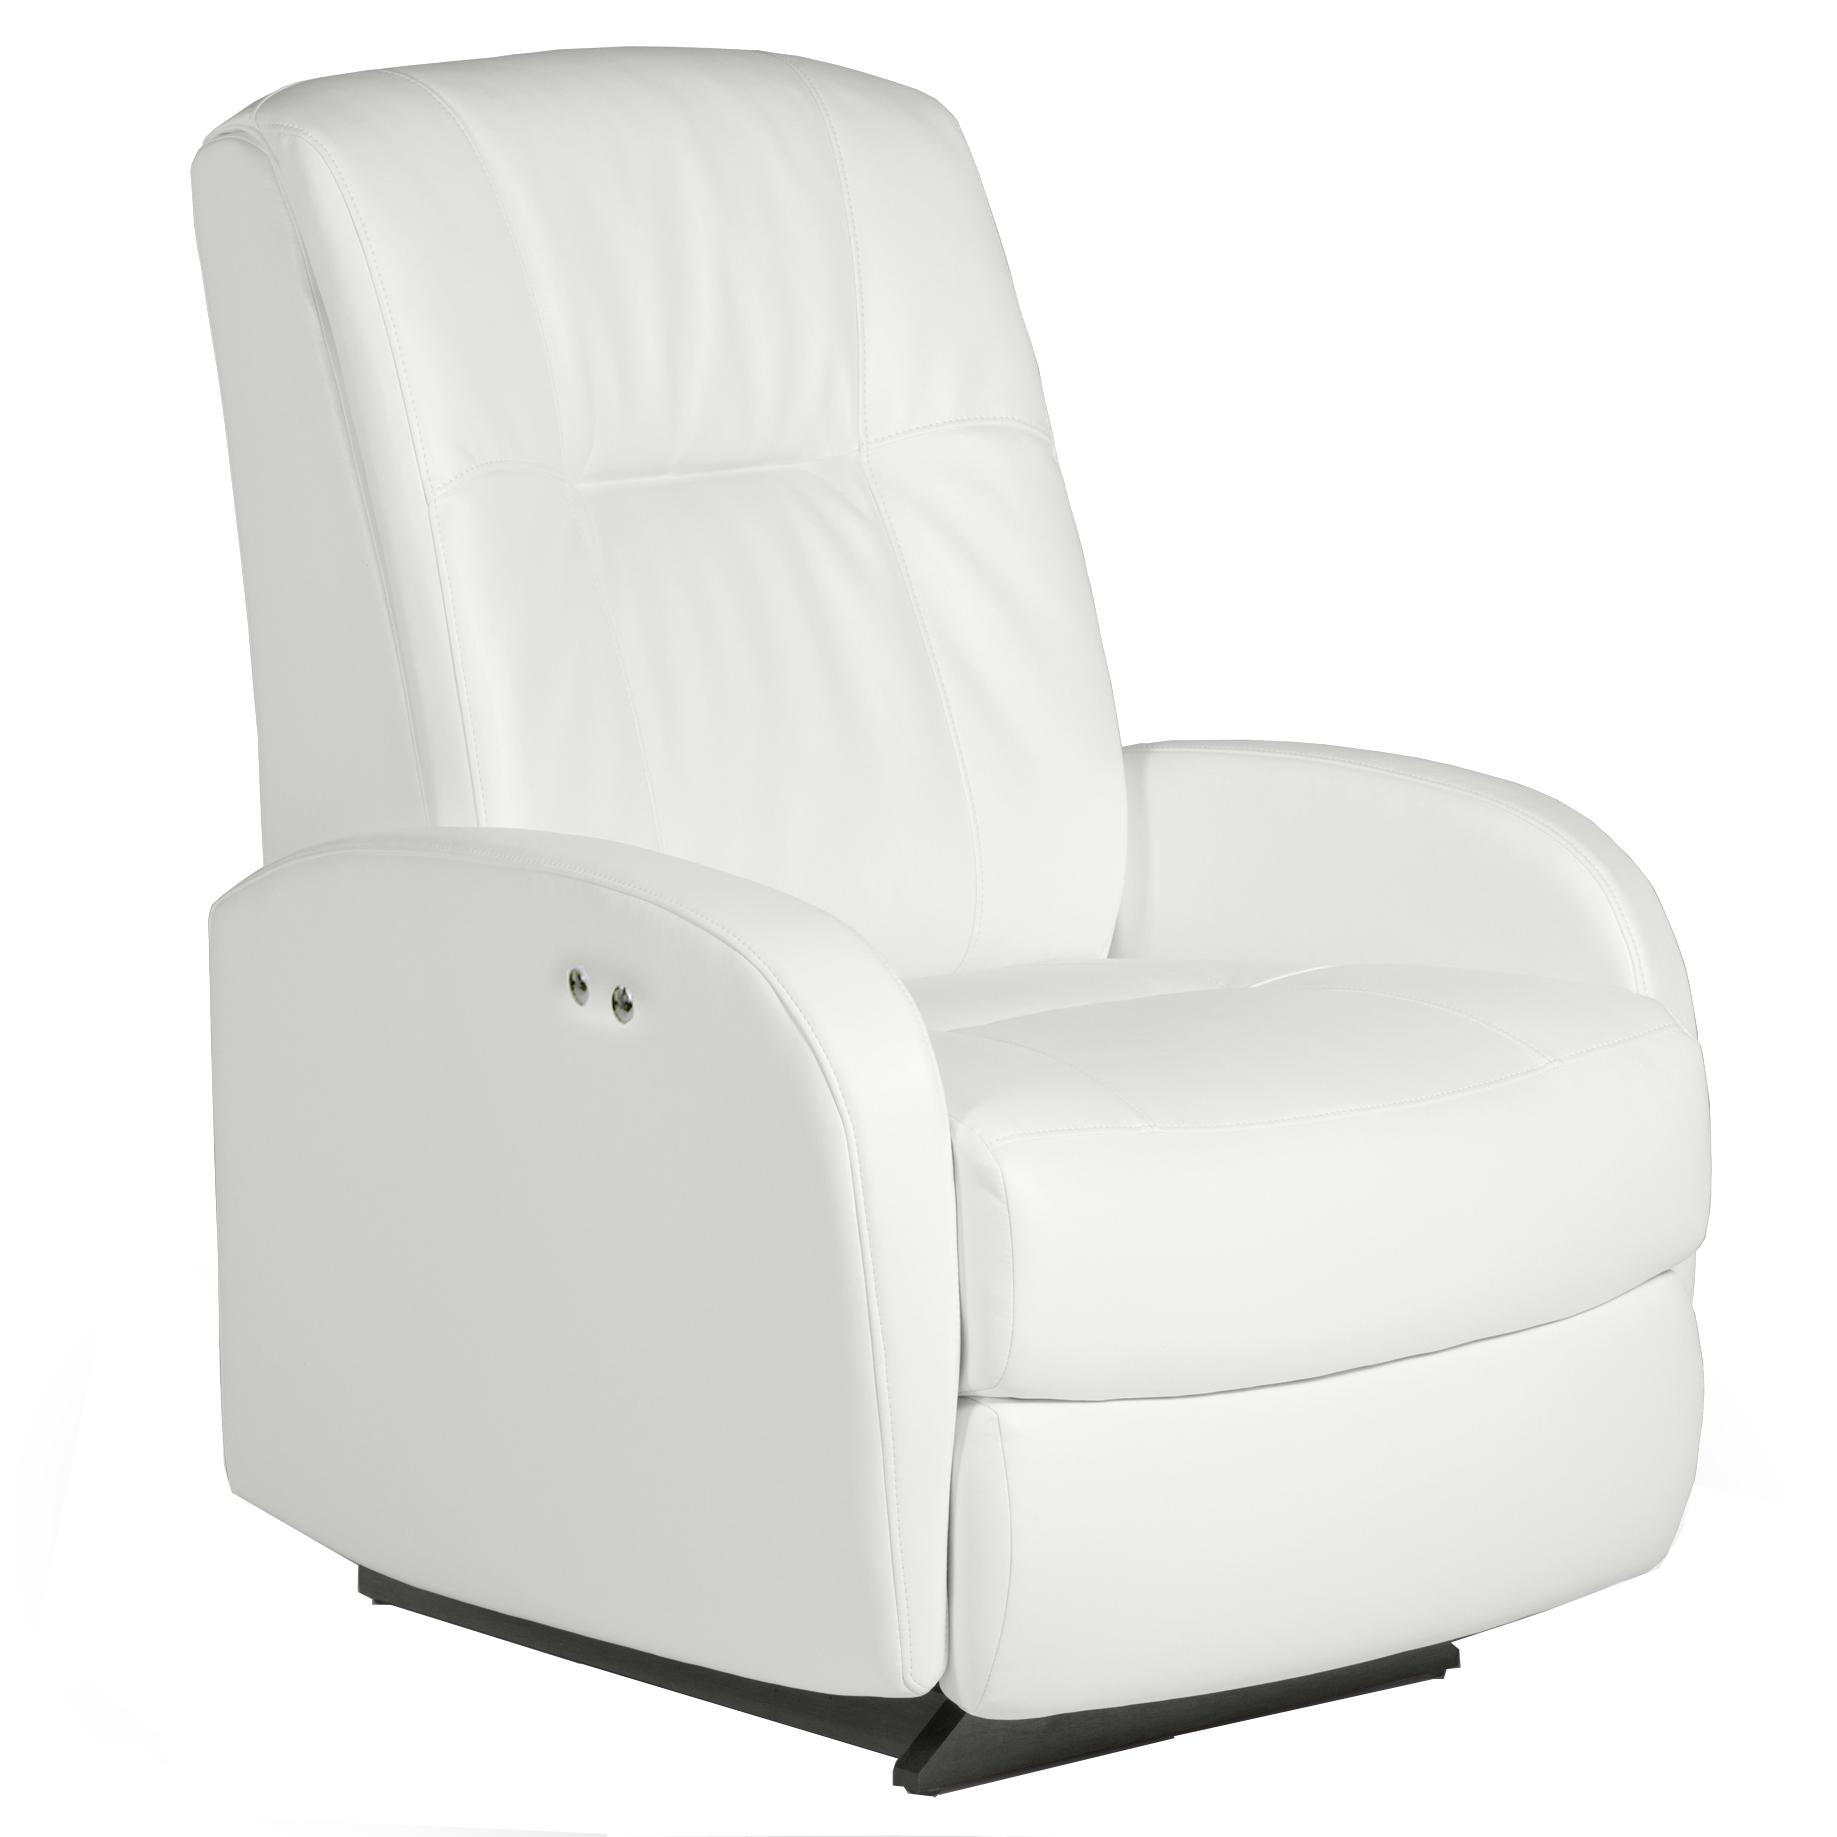 Ruddick Rocker Recliner by Best Home Furnishings at Turk Furniture